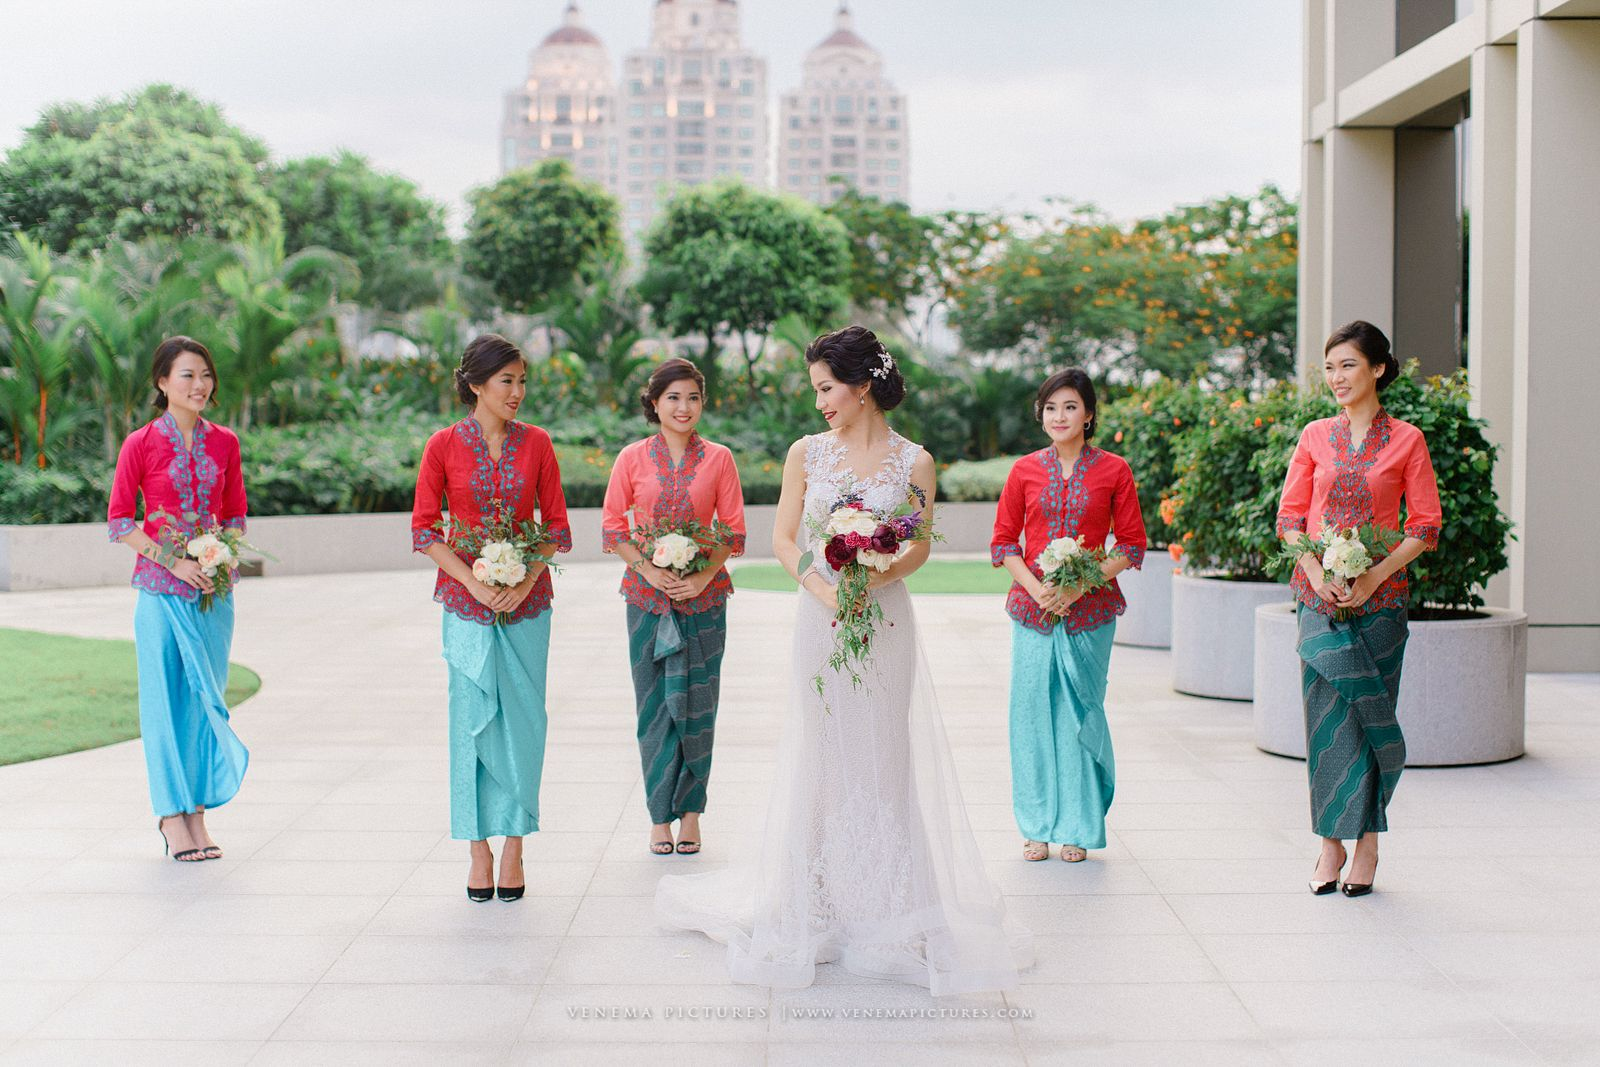 10 Gorgeous Traditional Attire Ideas for Your Bridesmaids Image 9